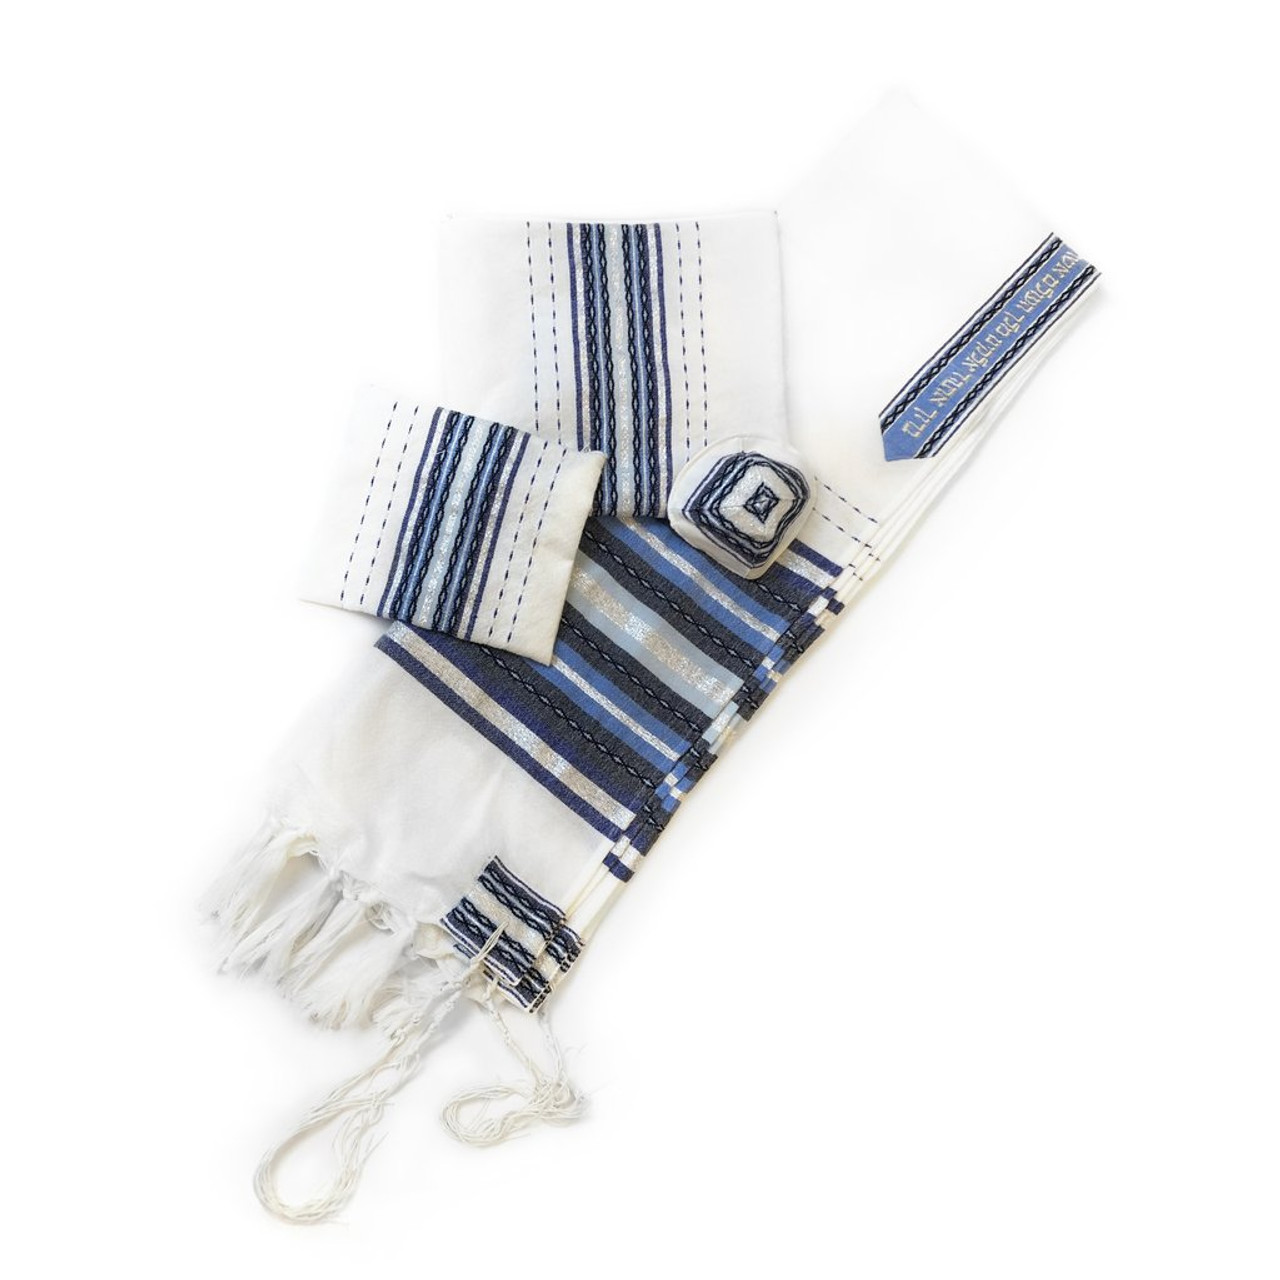 Gabrieli Premium - White with Shades of Blue & Silver